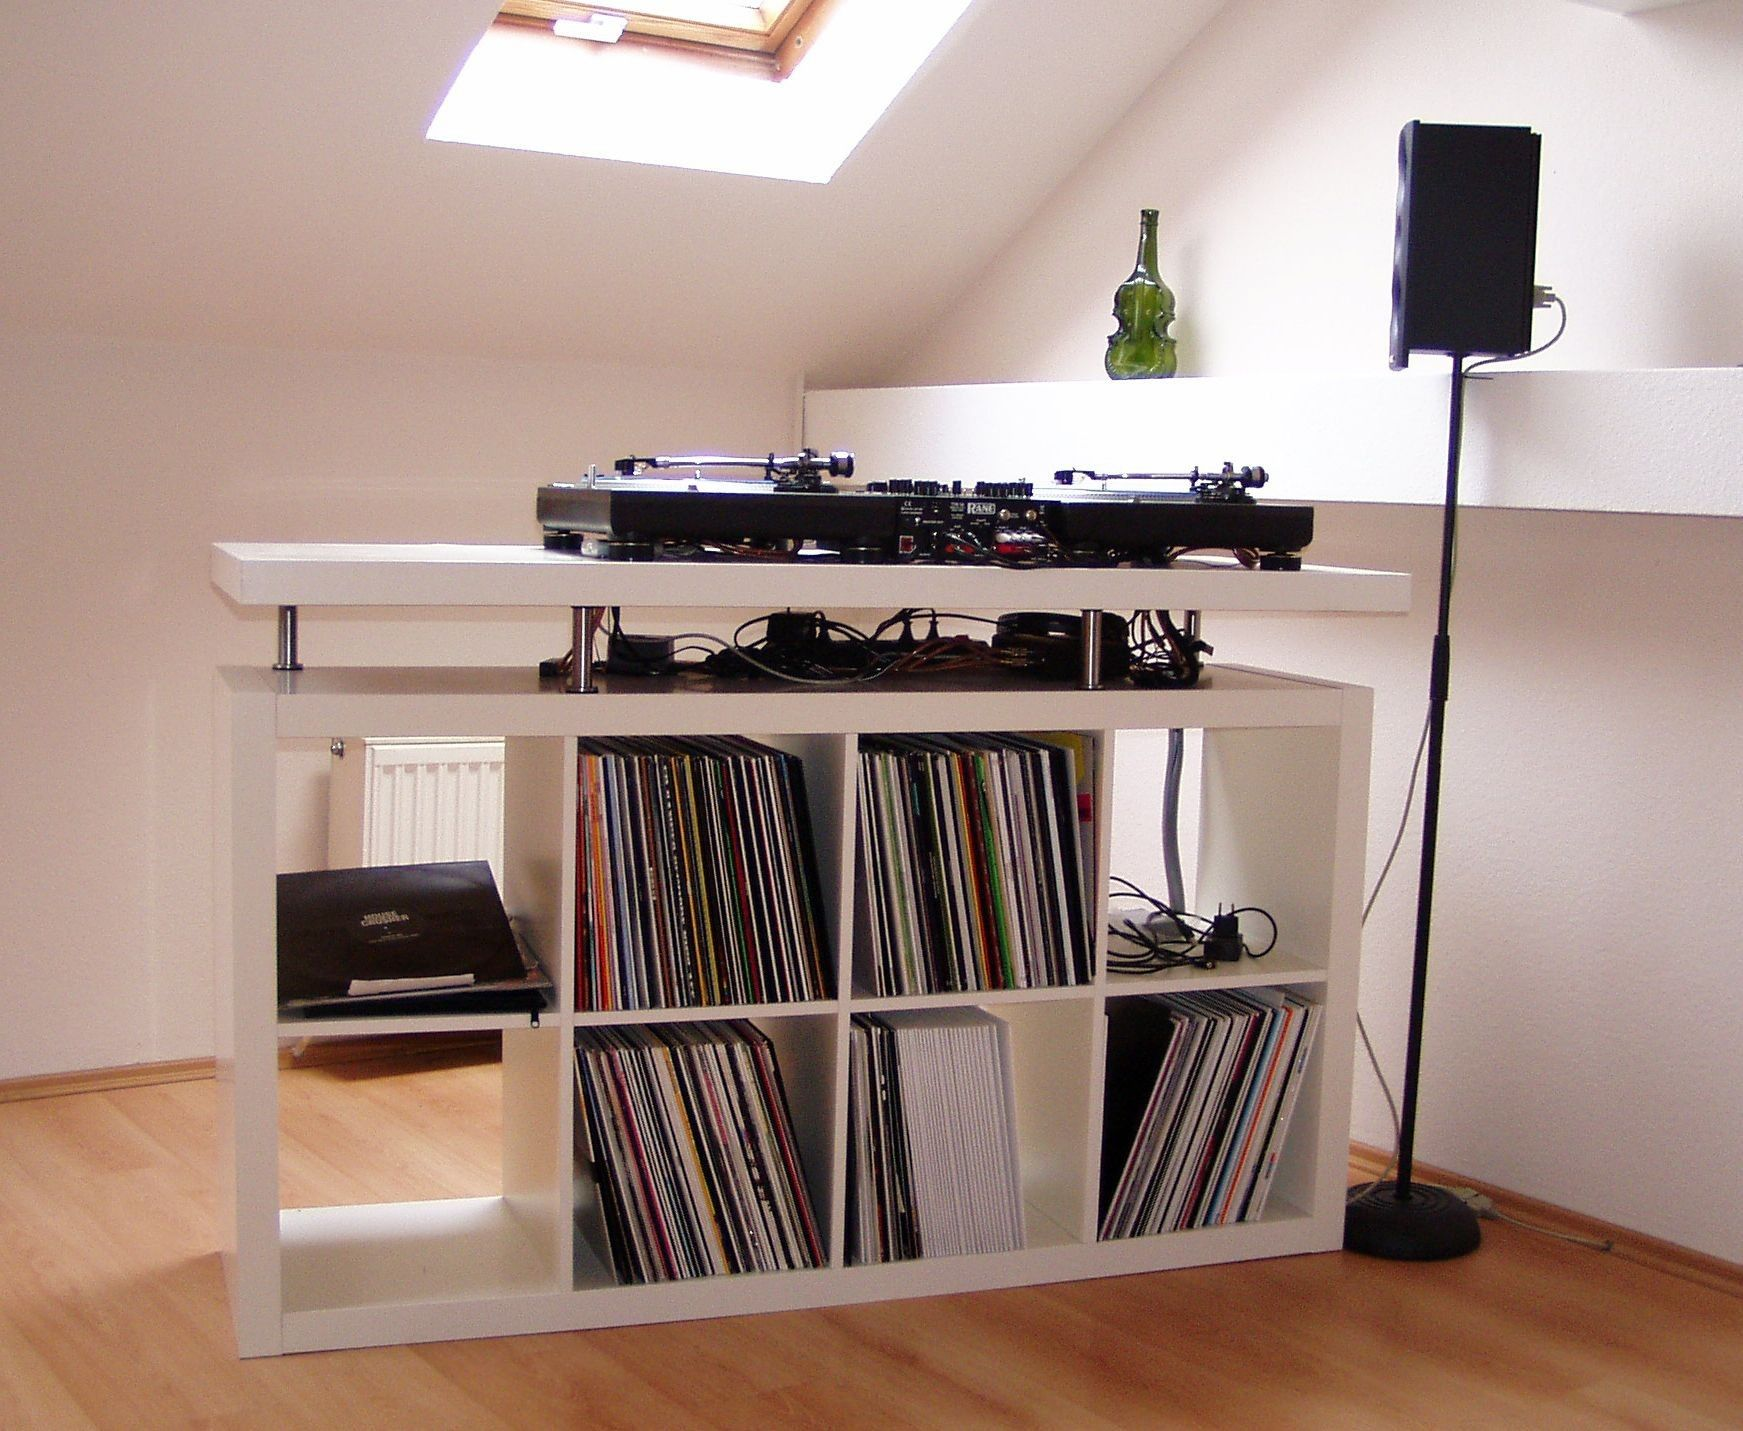 pin by janine montgomery on music setup in 2019 home studio music dj table vinyl record storage